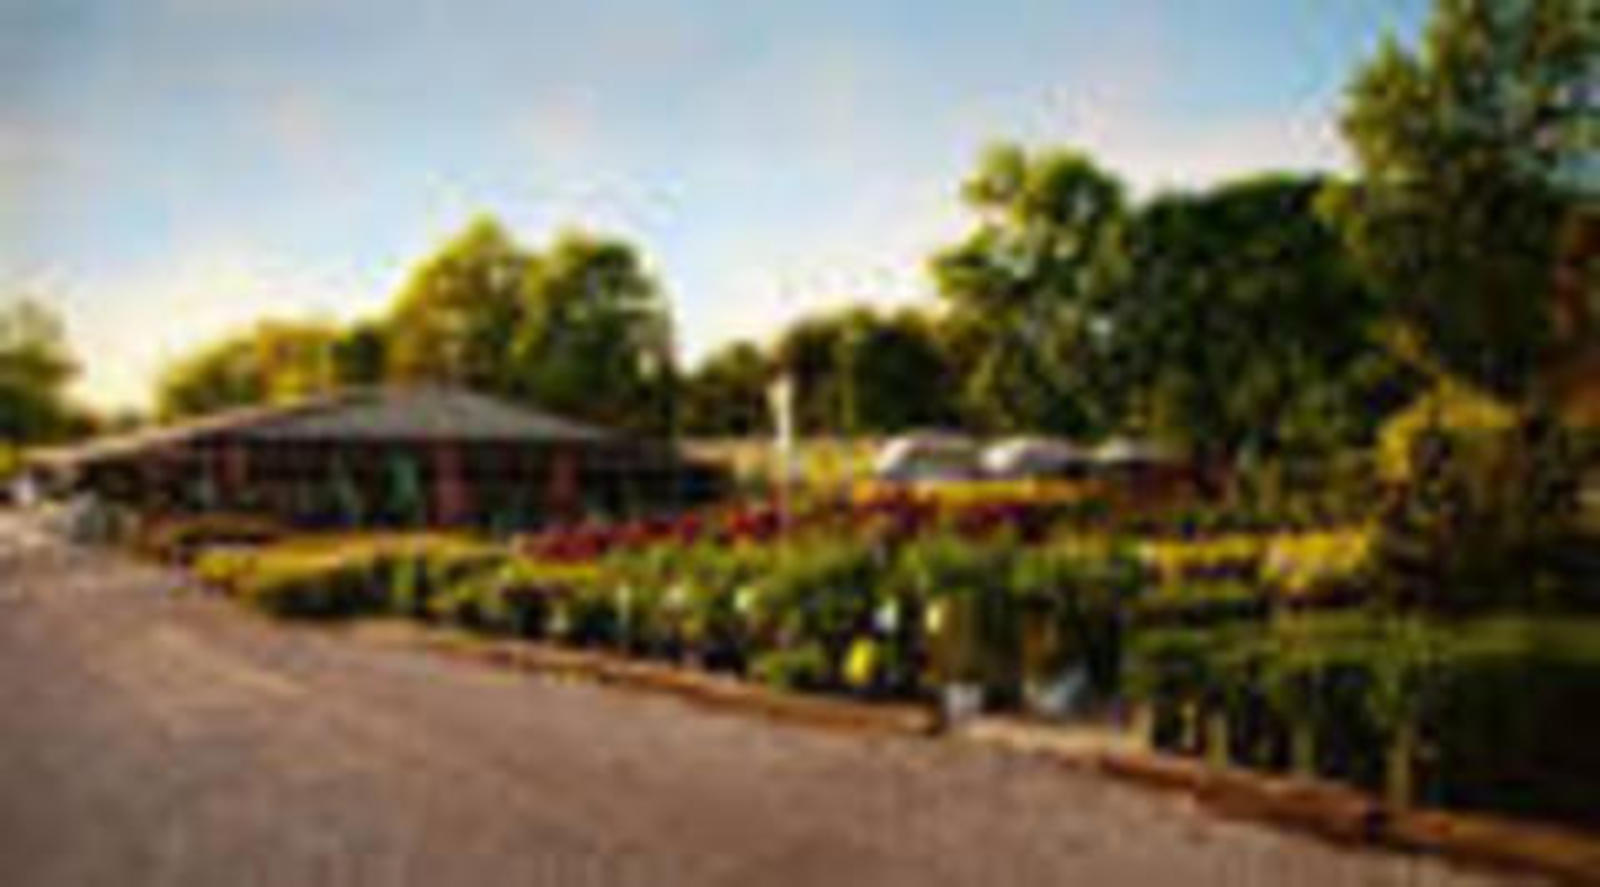 About Our Garden Center in Akron